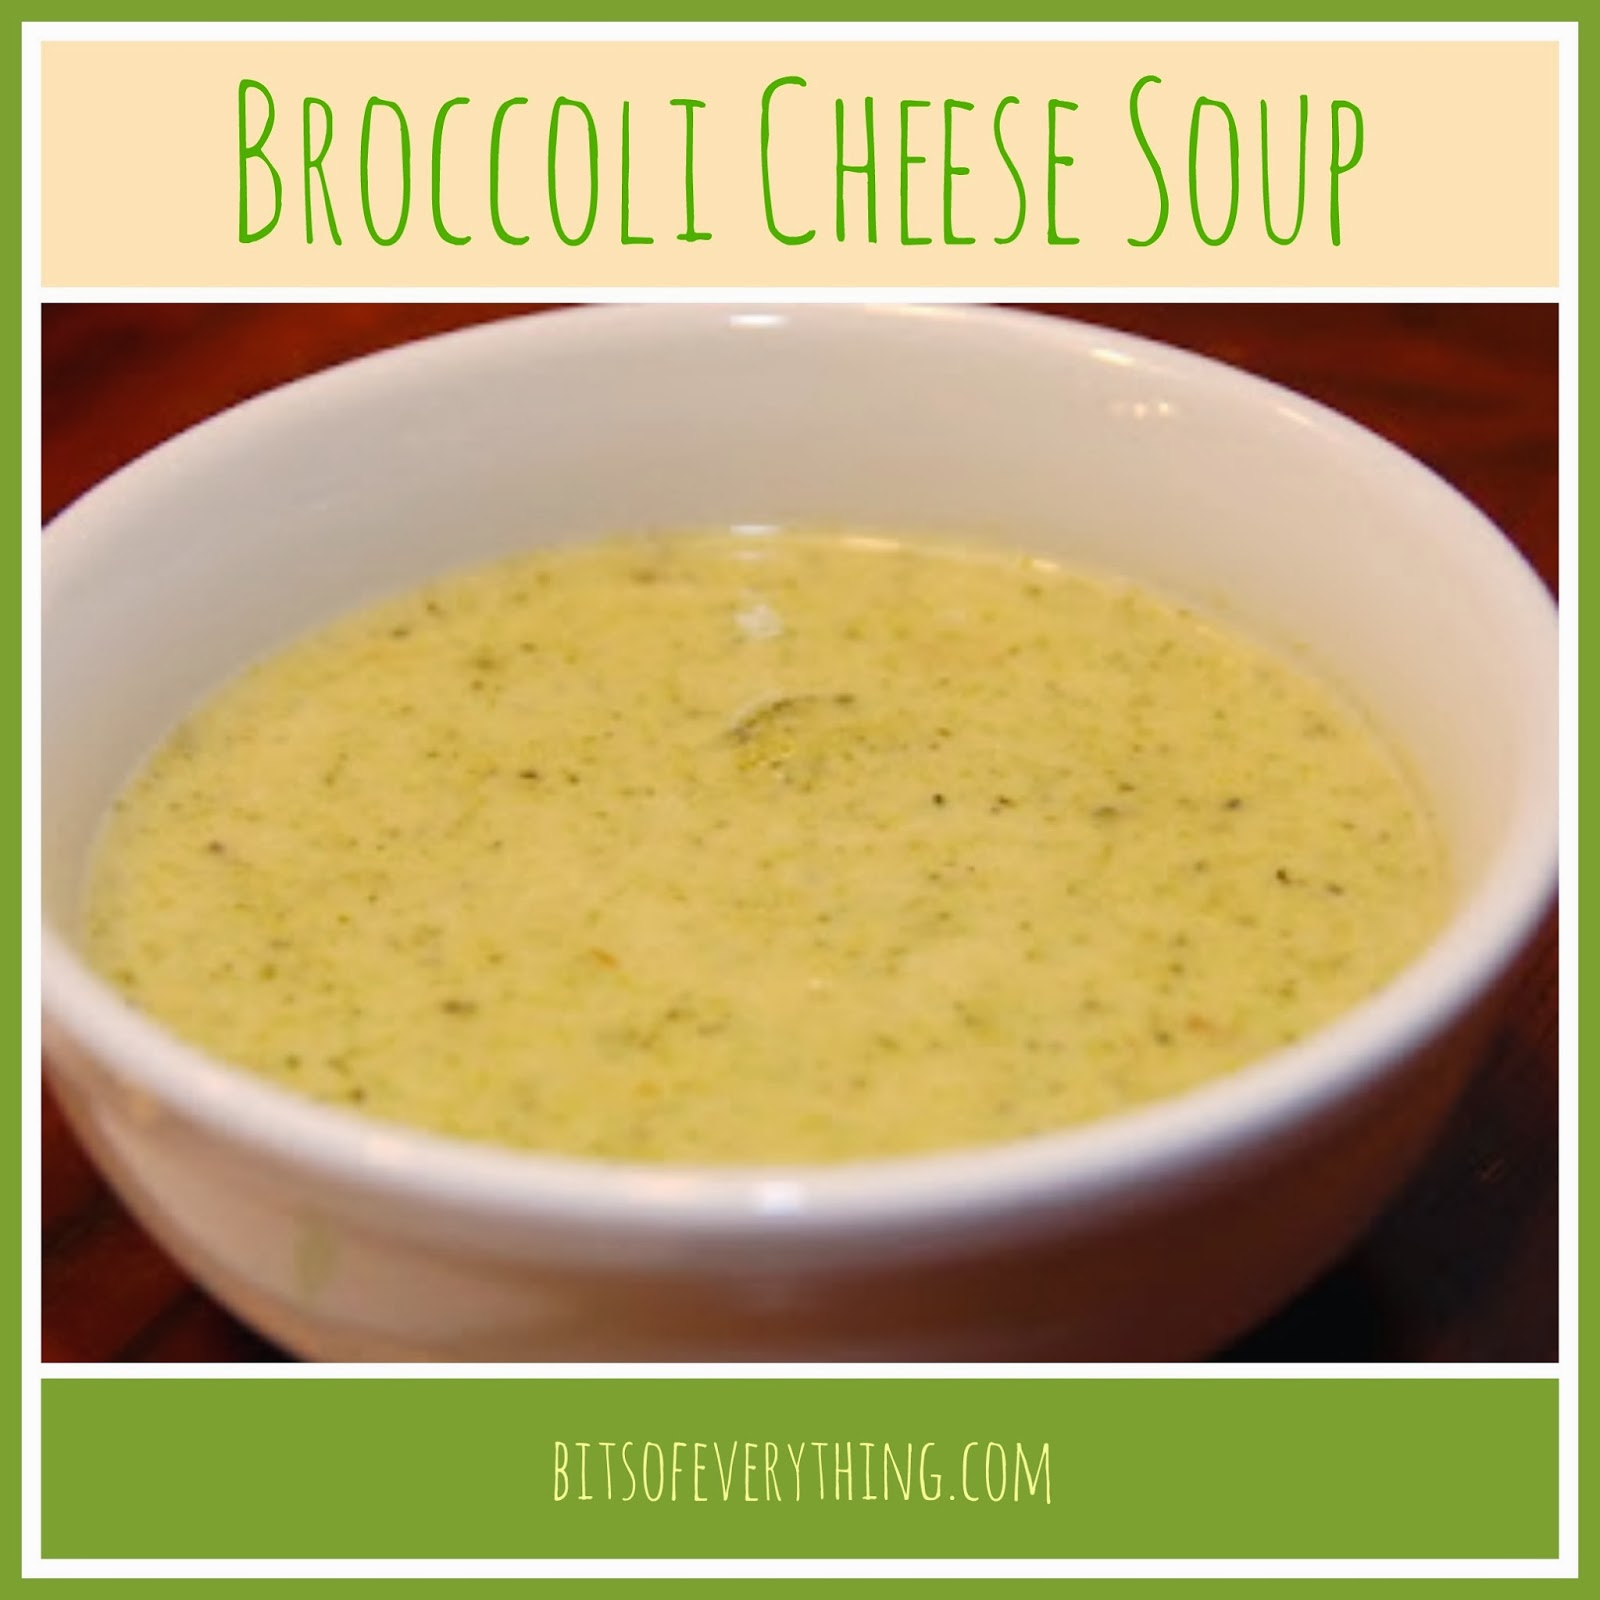 Yummy Cheese Broccoli Soup | Bits of Everything